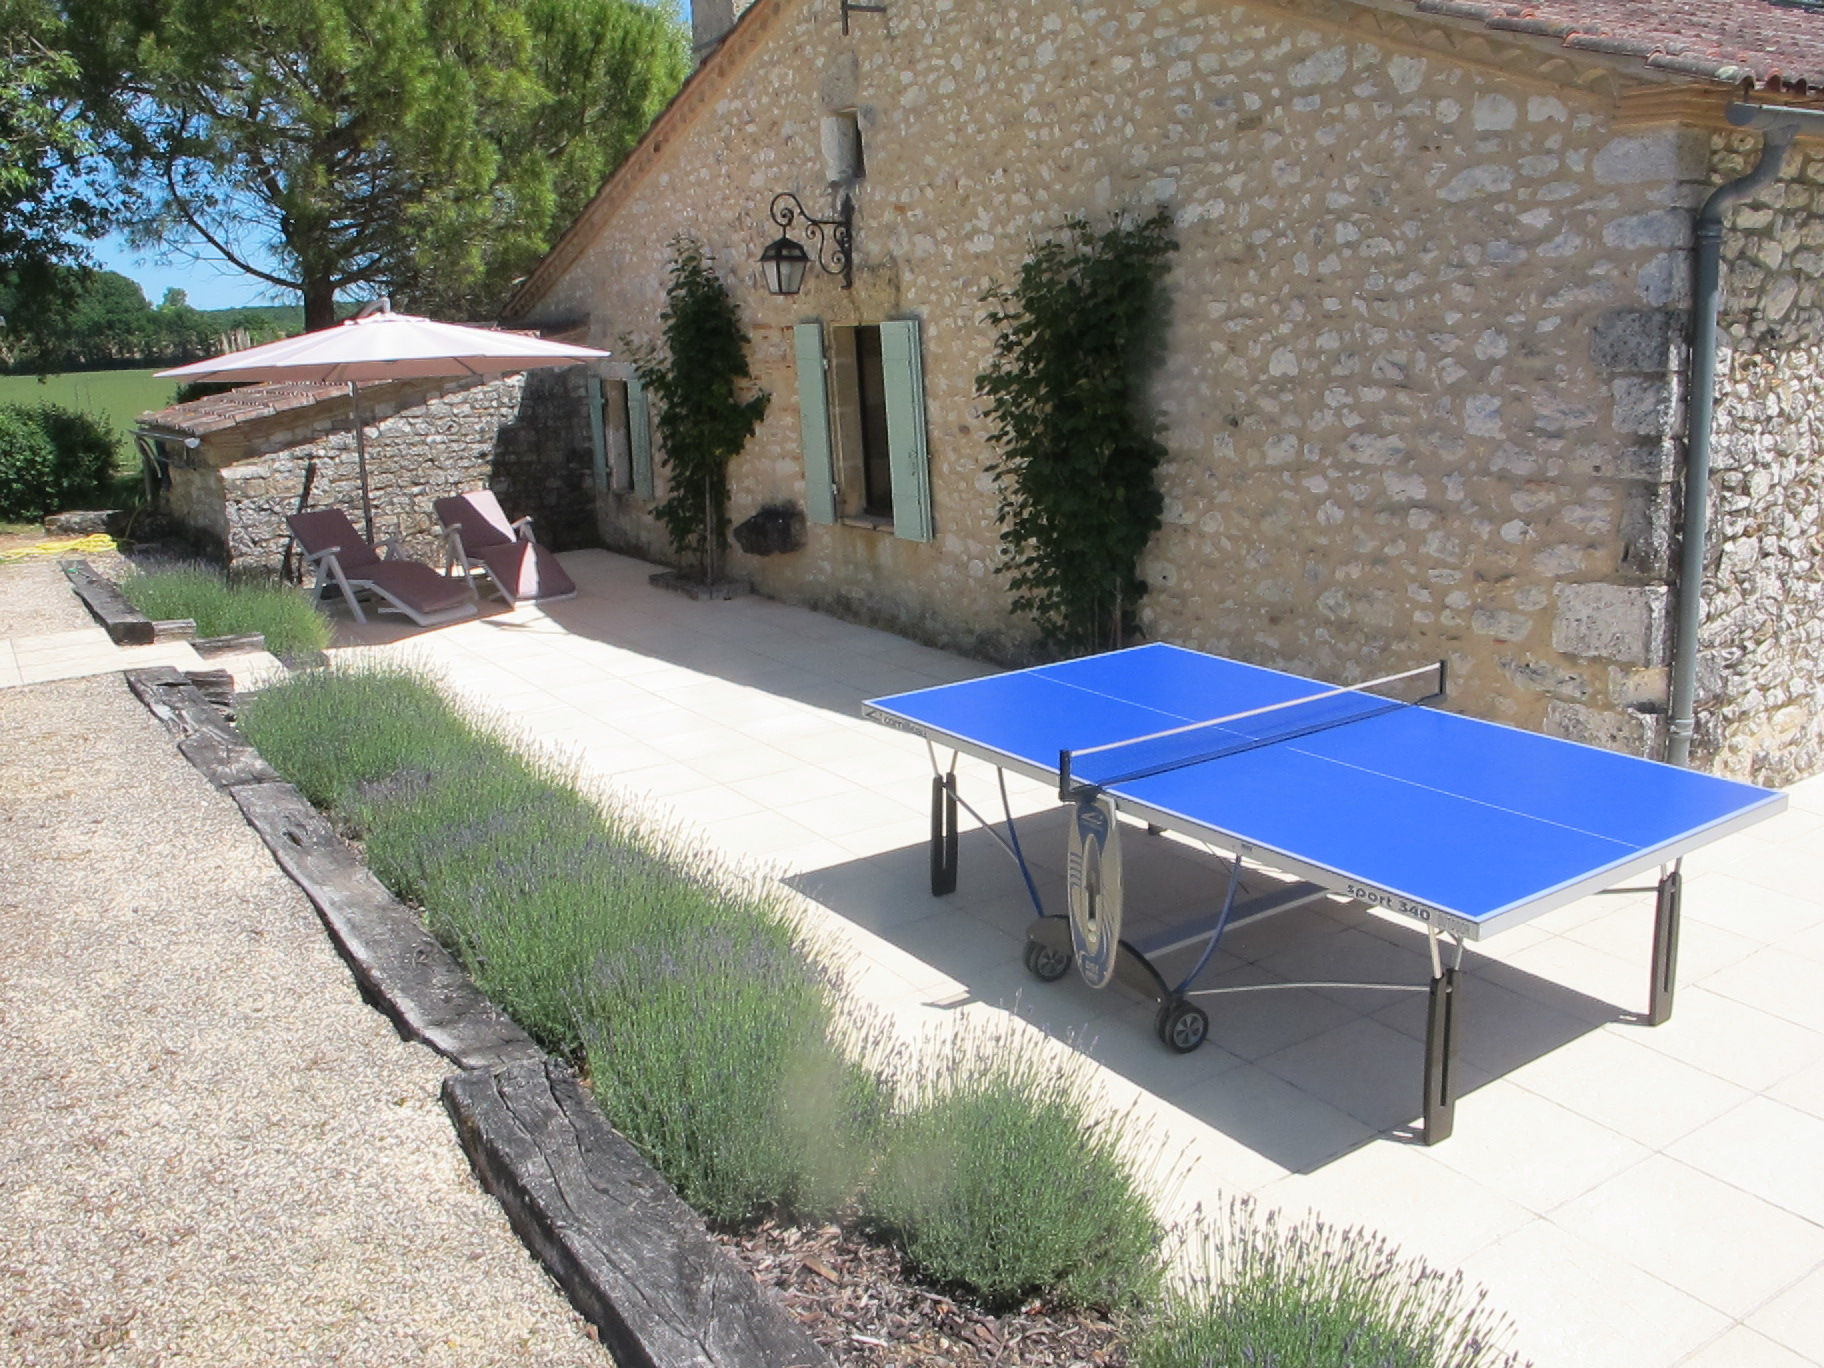 Table tennis on patio